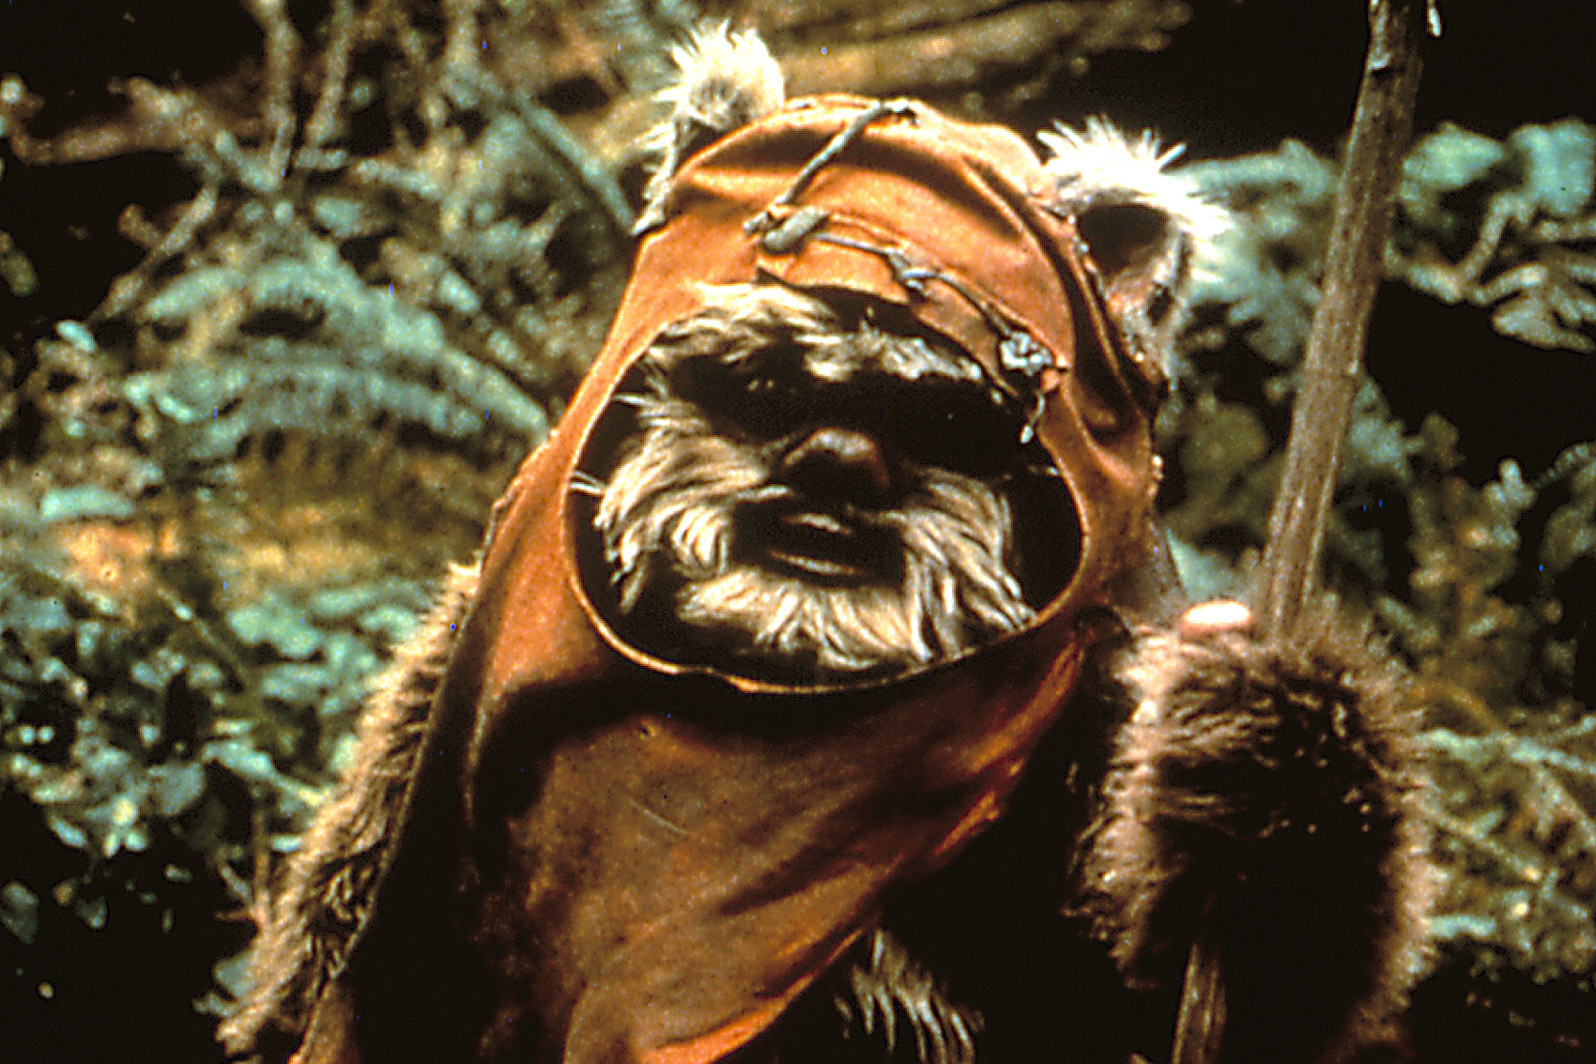 An Ewok in Star Wars: Return of the Jedi